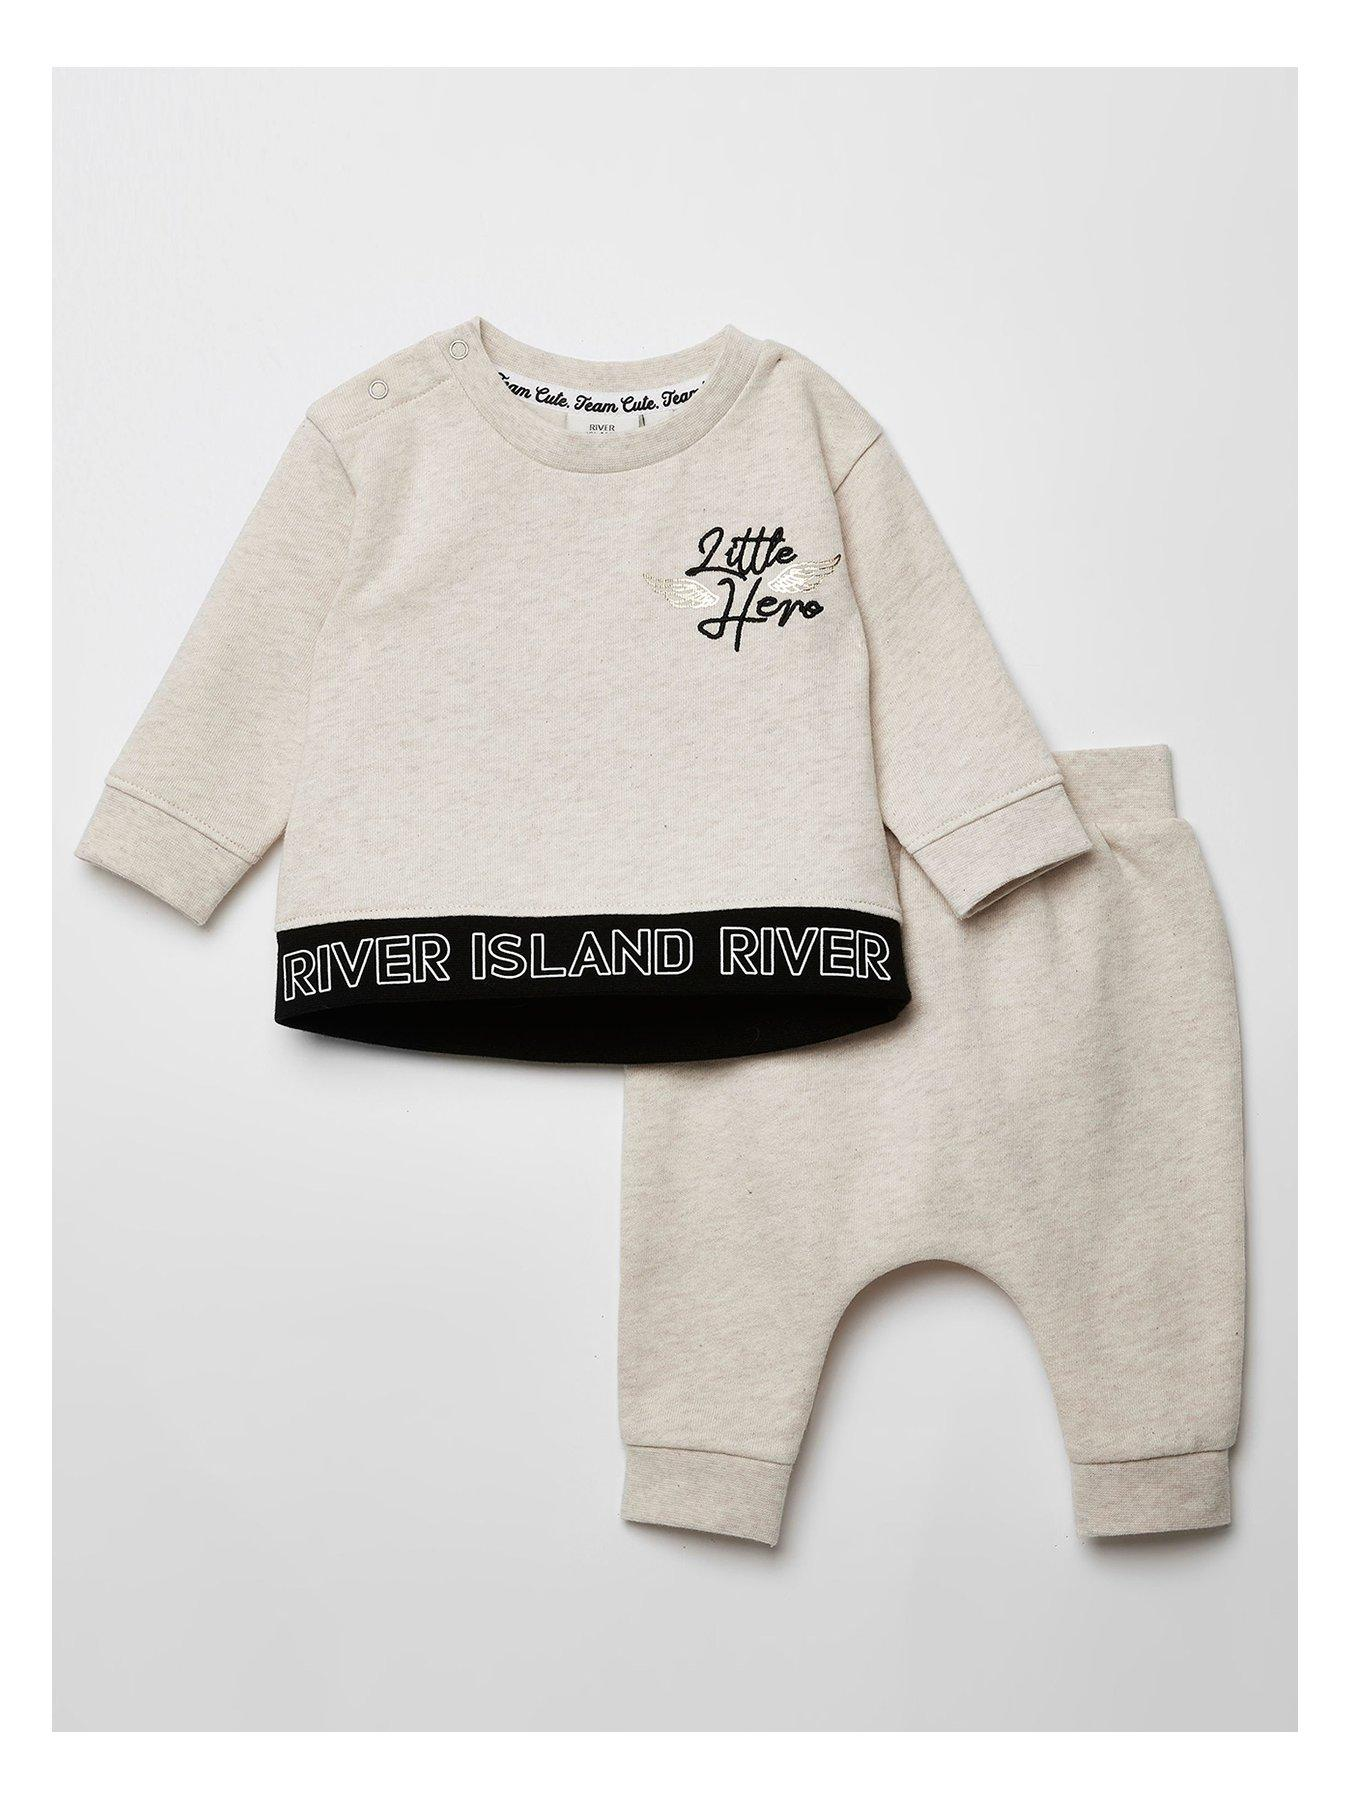 Baby Clothing Outfit Baby Sweater /& Baby Joggers SR Better Version Of Mummy Baby Outfit Baby Gift Set